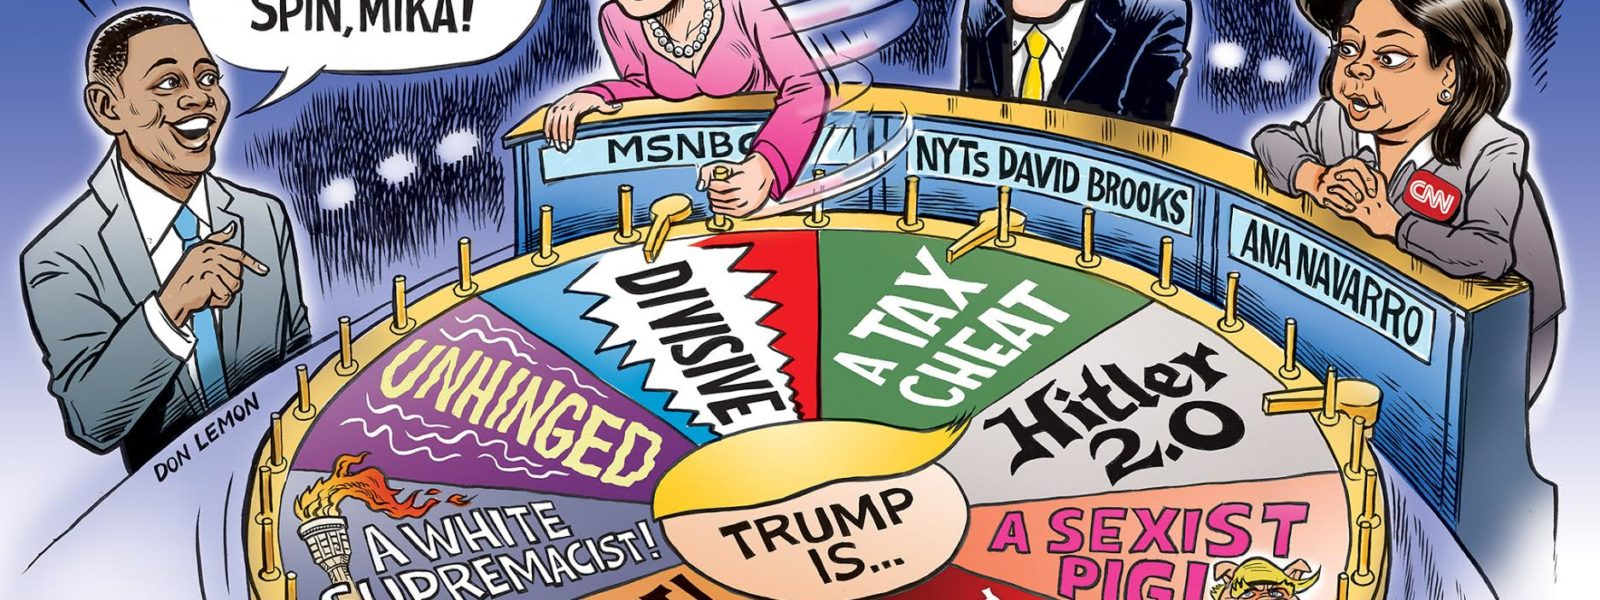 Wheel of Fake News